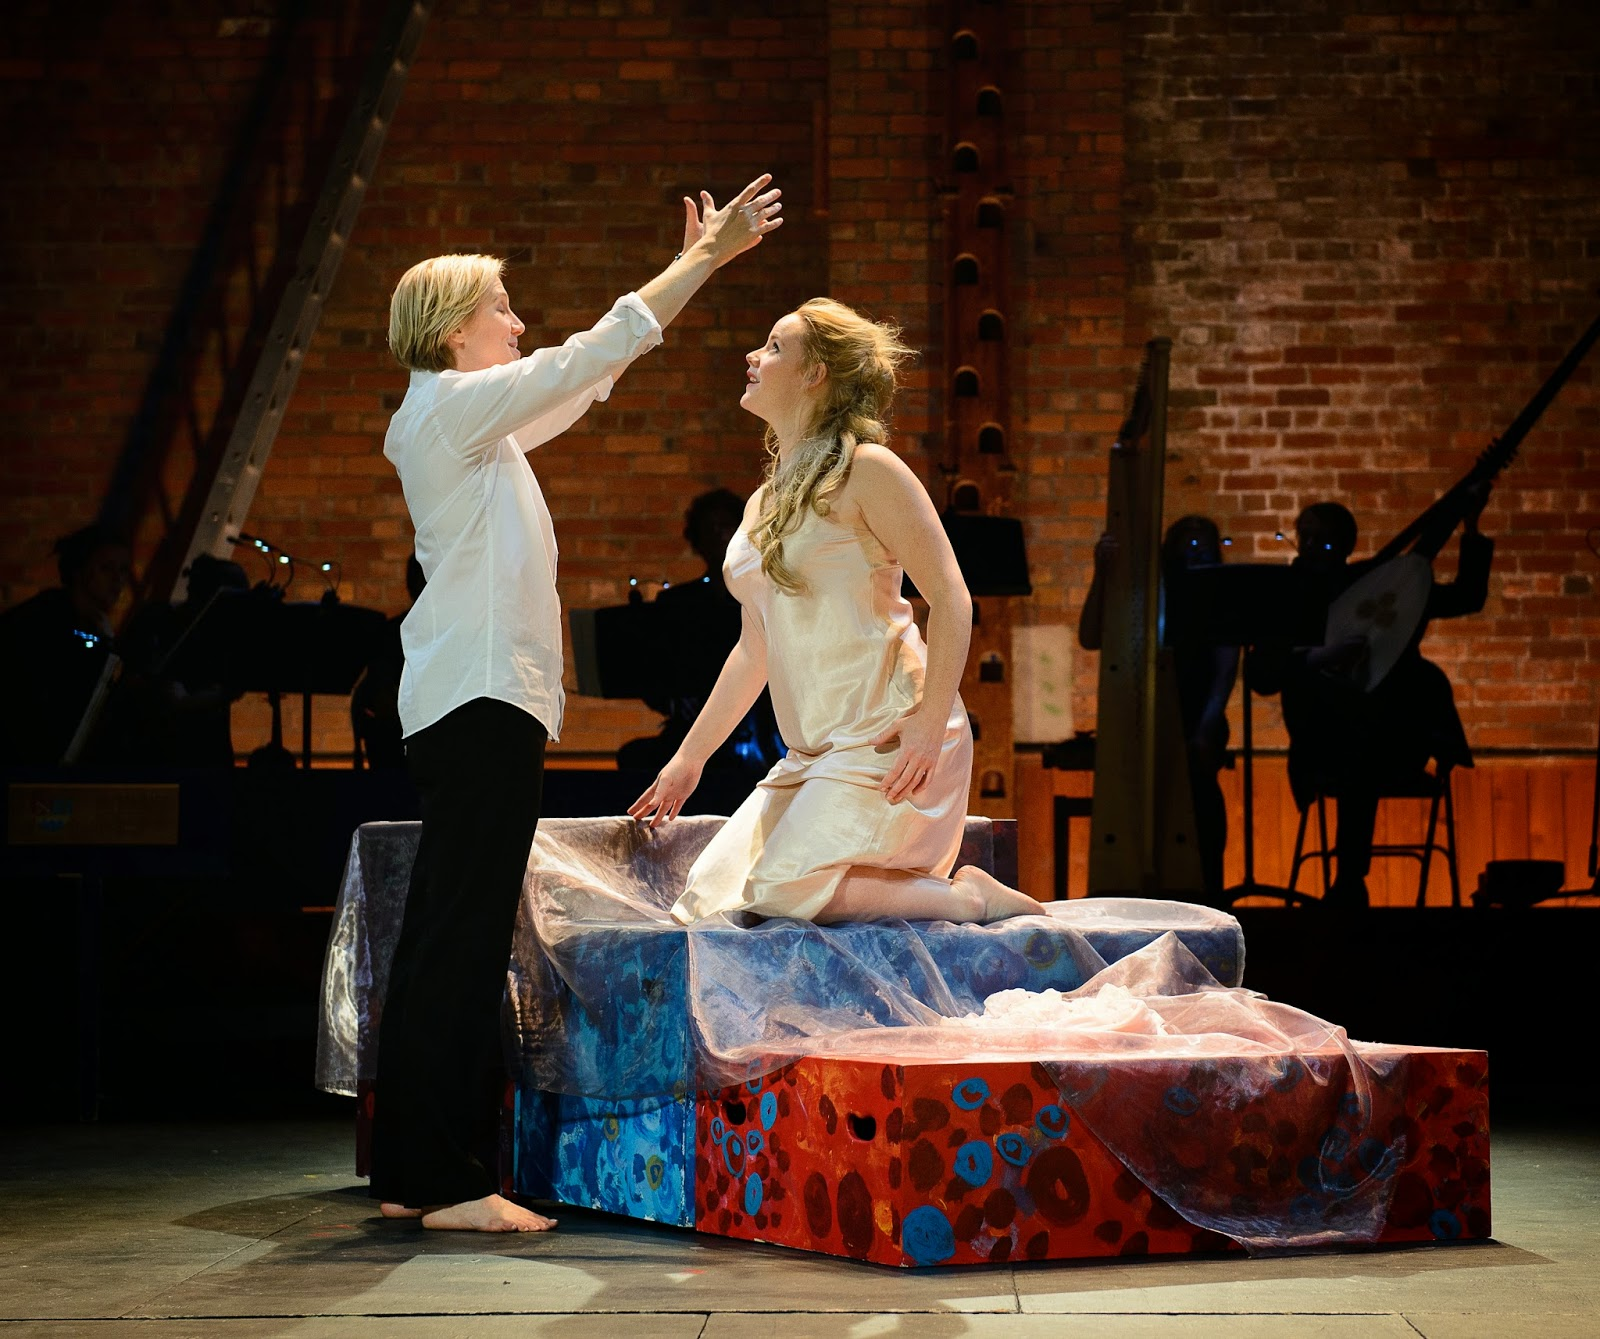 Ryedale Festival's production of The Coronation of Poppea